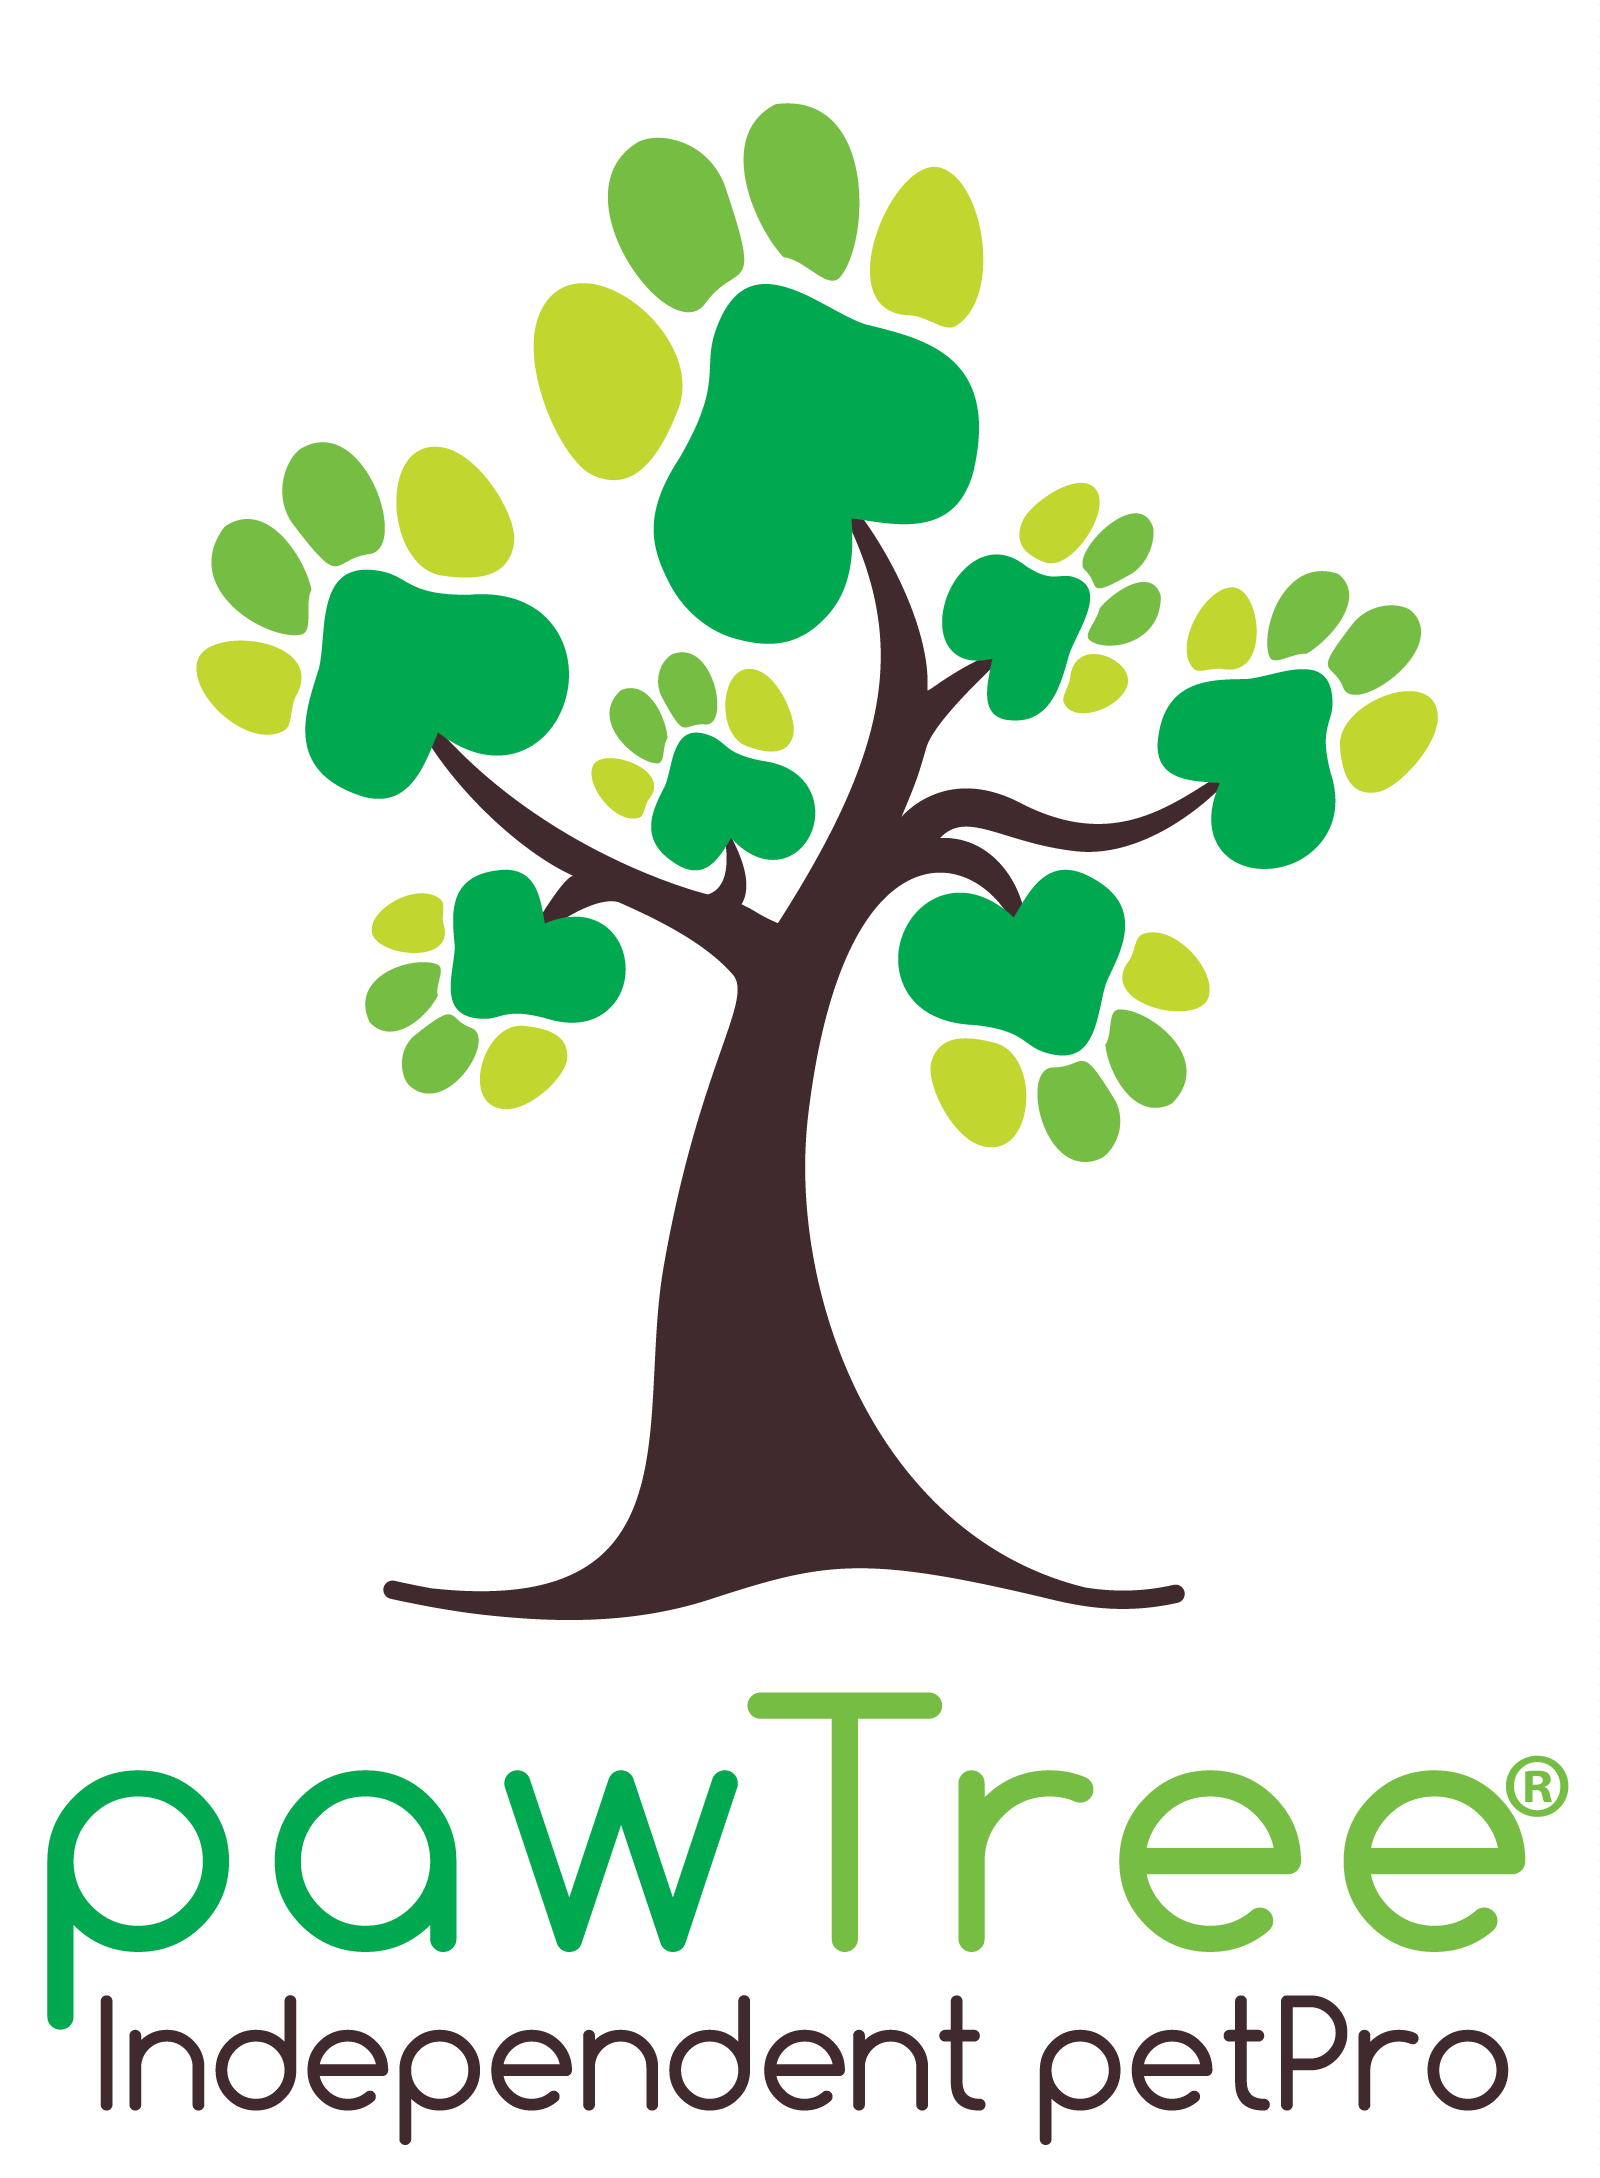 pawTree logo for  Independent petPRO - Hi Rez (1).png